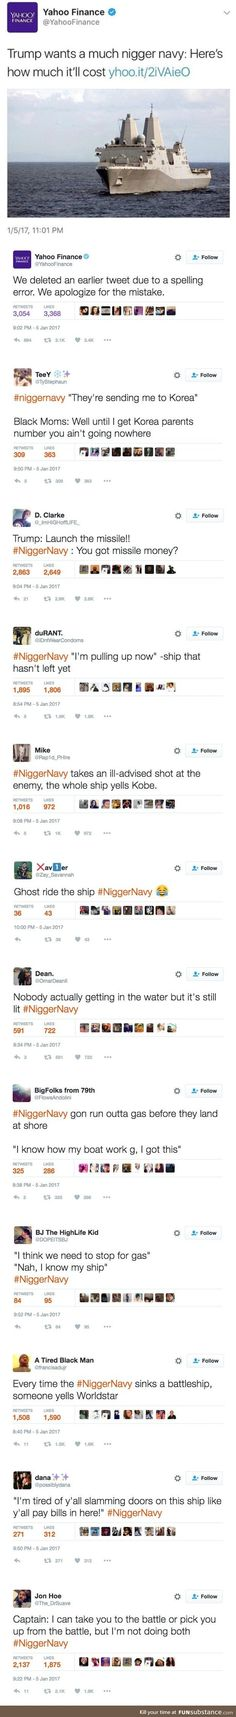 Black navy tweets